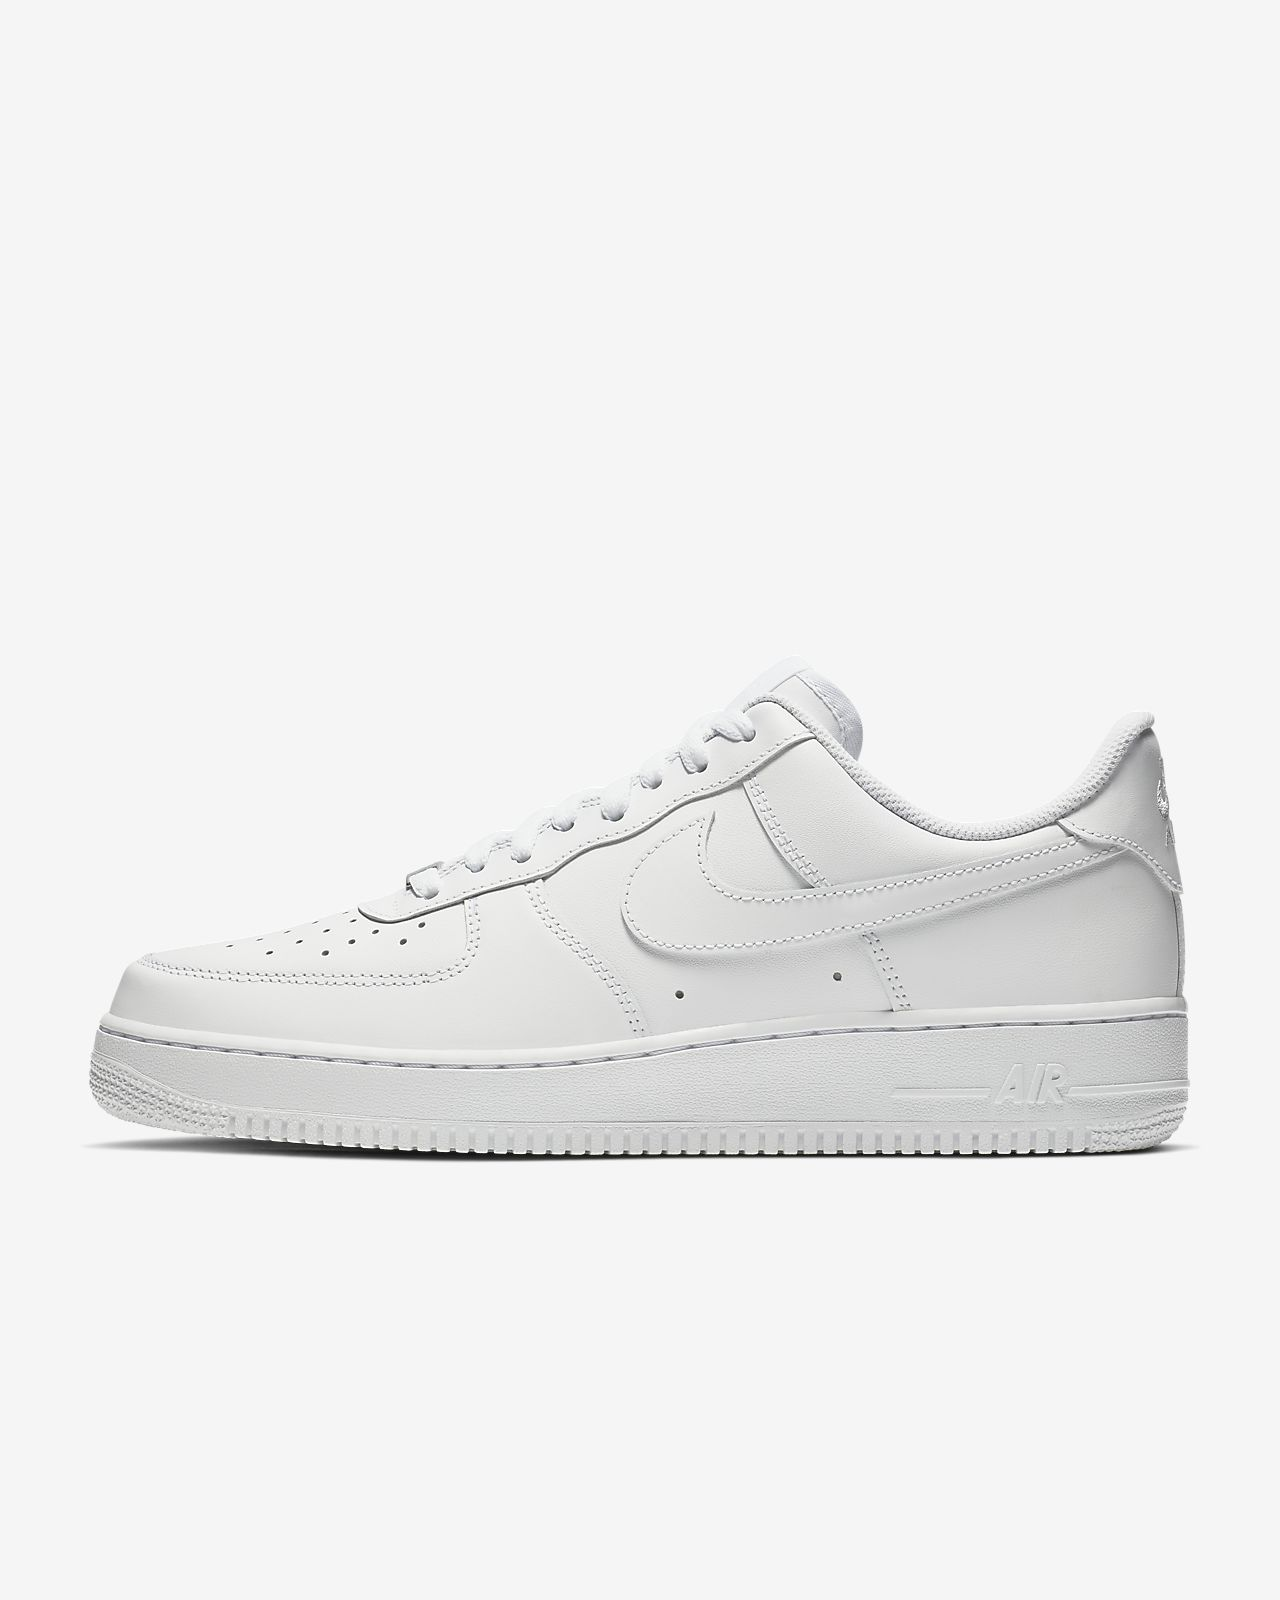 6fdd764372 Nike Air Force 1 '07 Men's Shoe